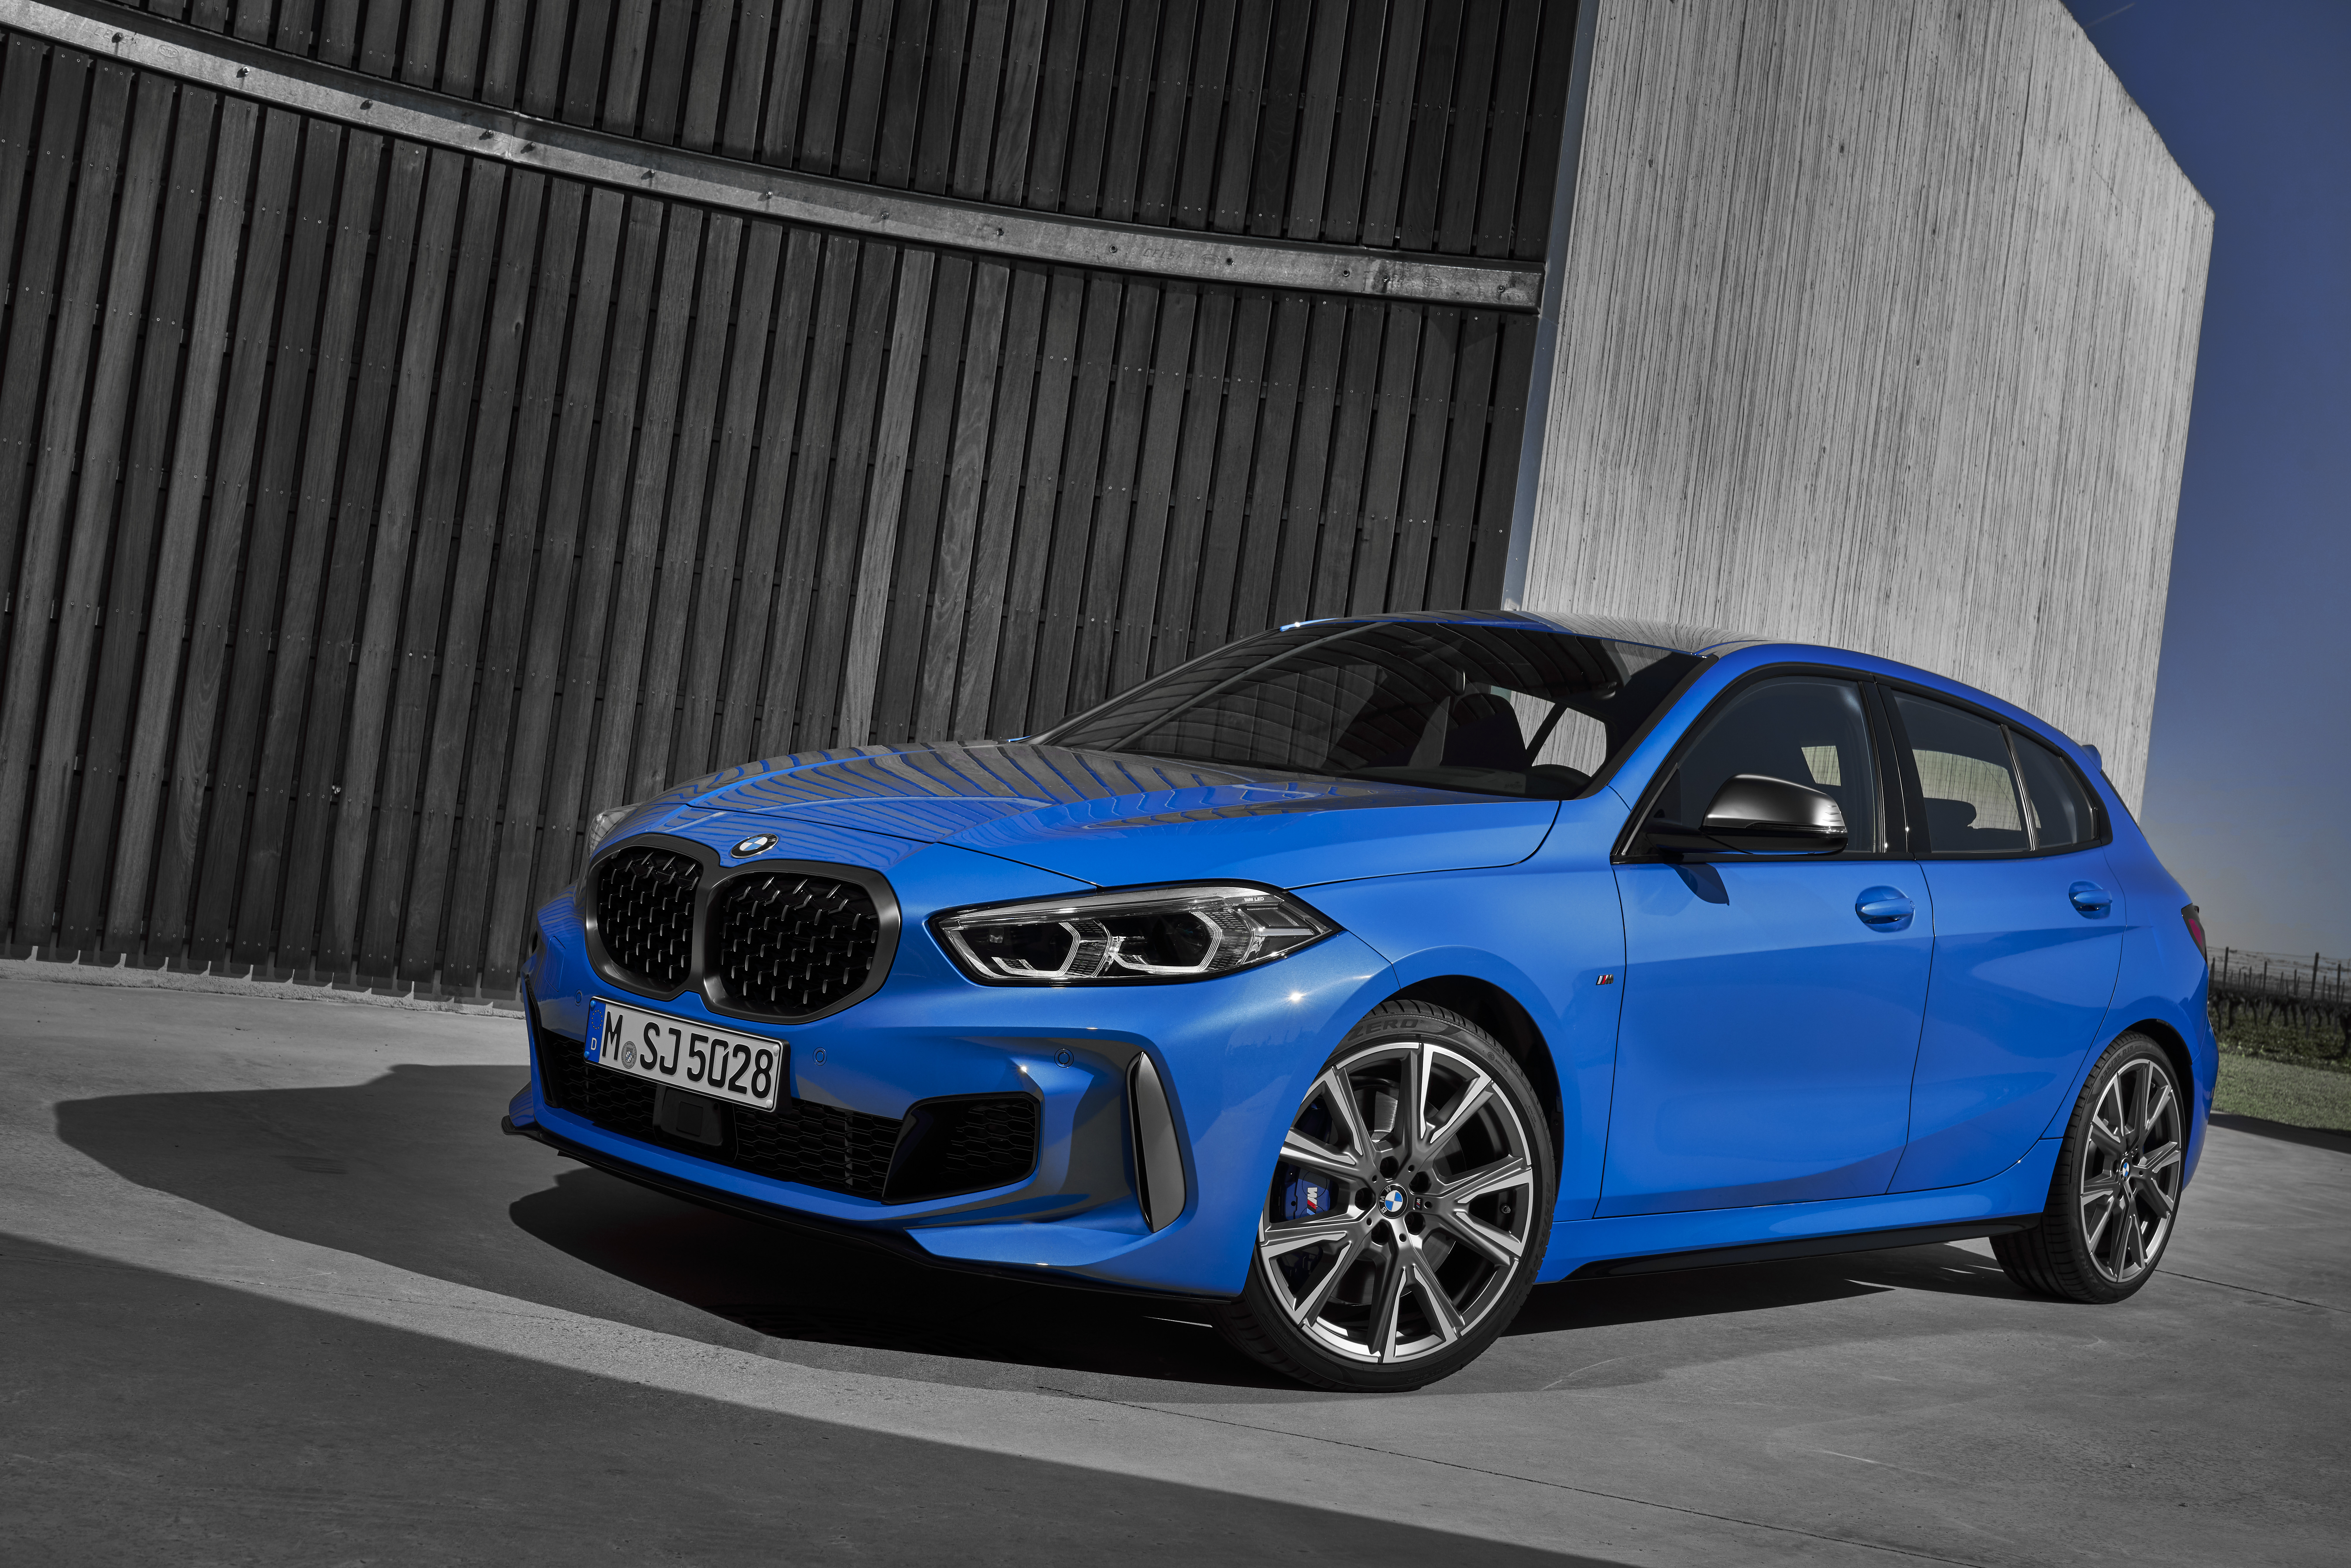 2020 Bmw 1 Series F40 Quirks And Facts Pictures Photos